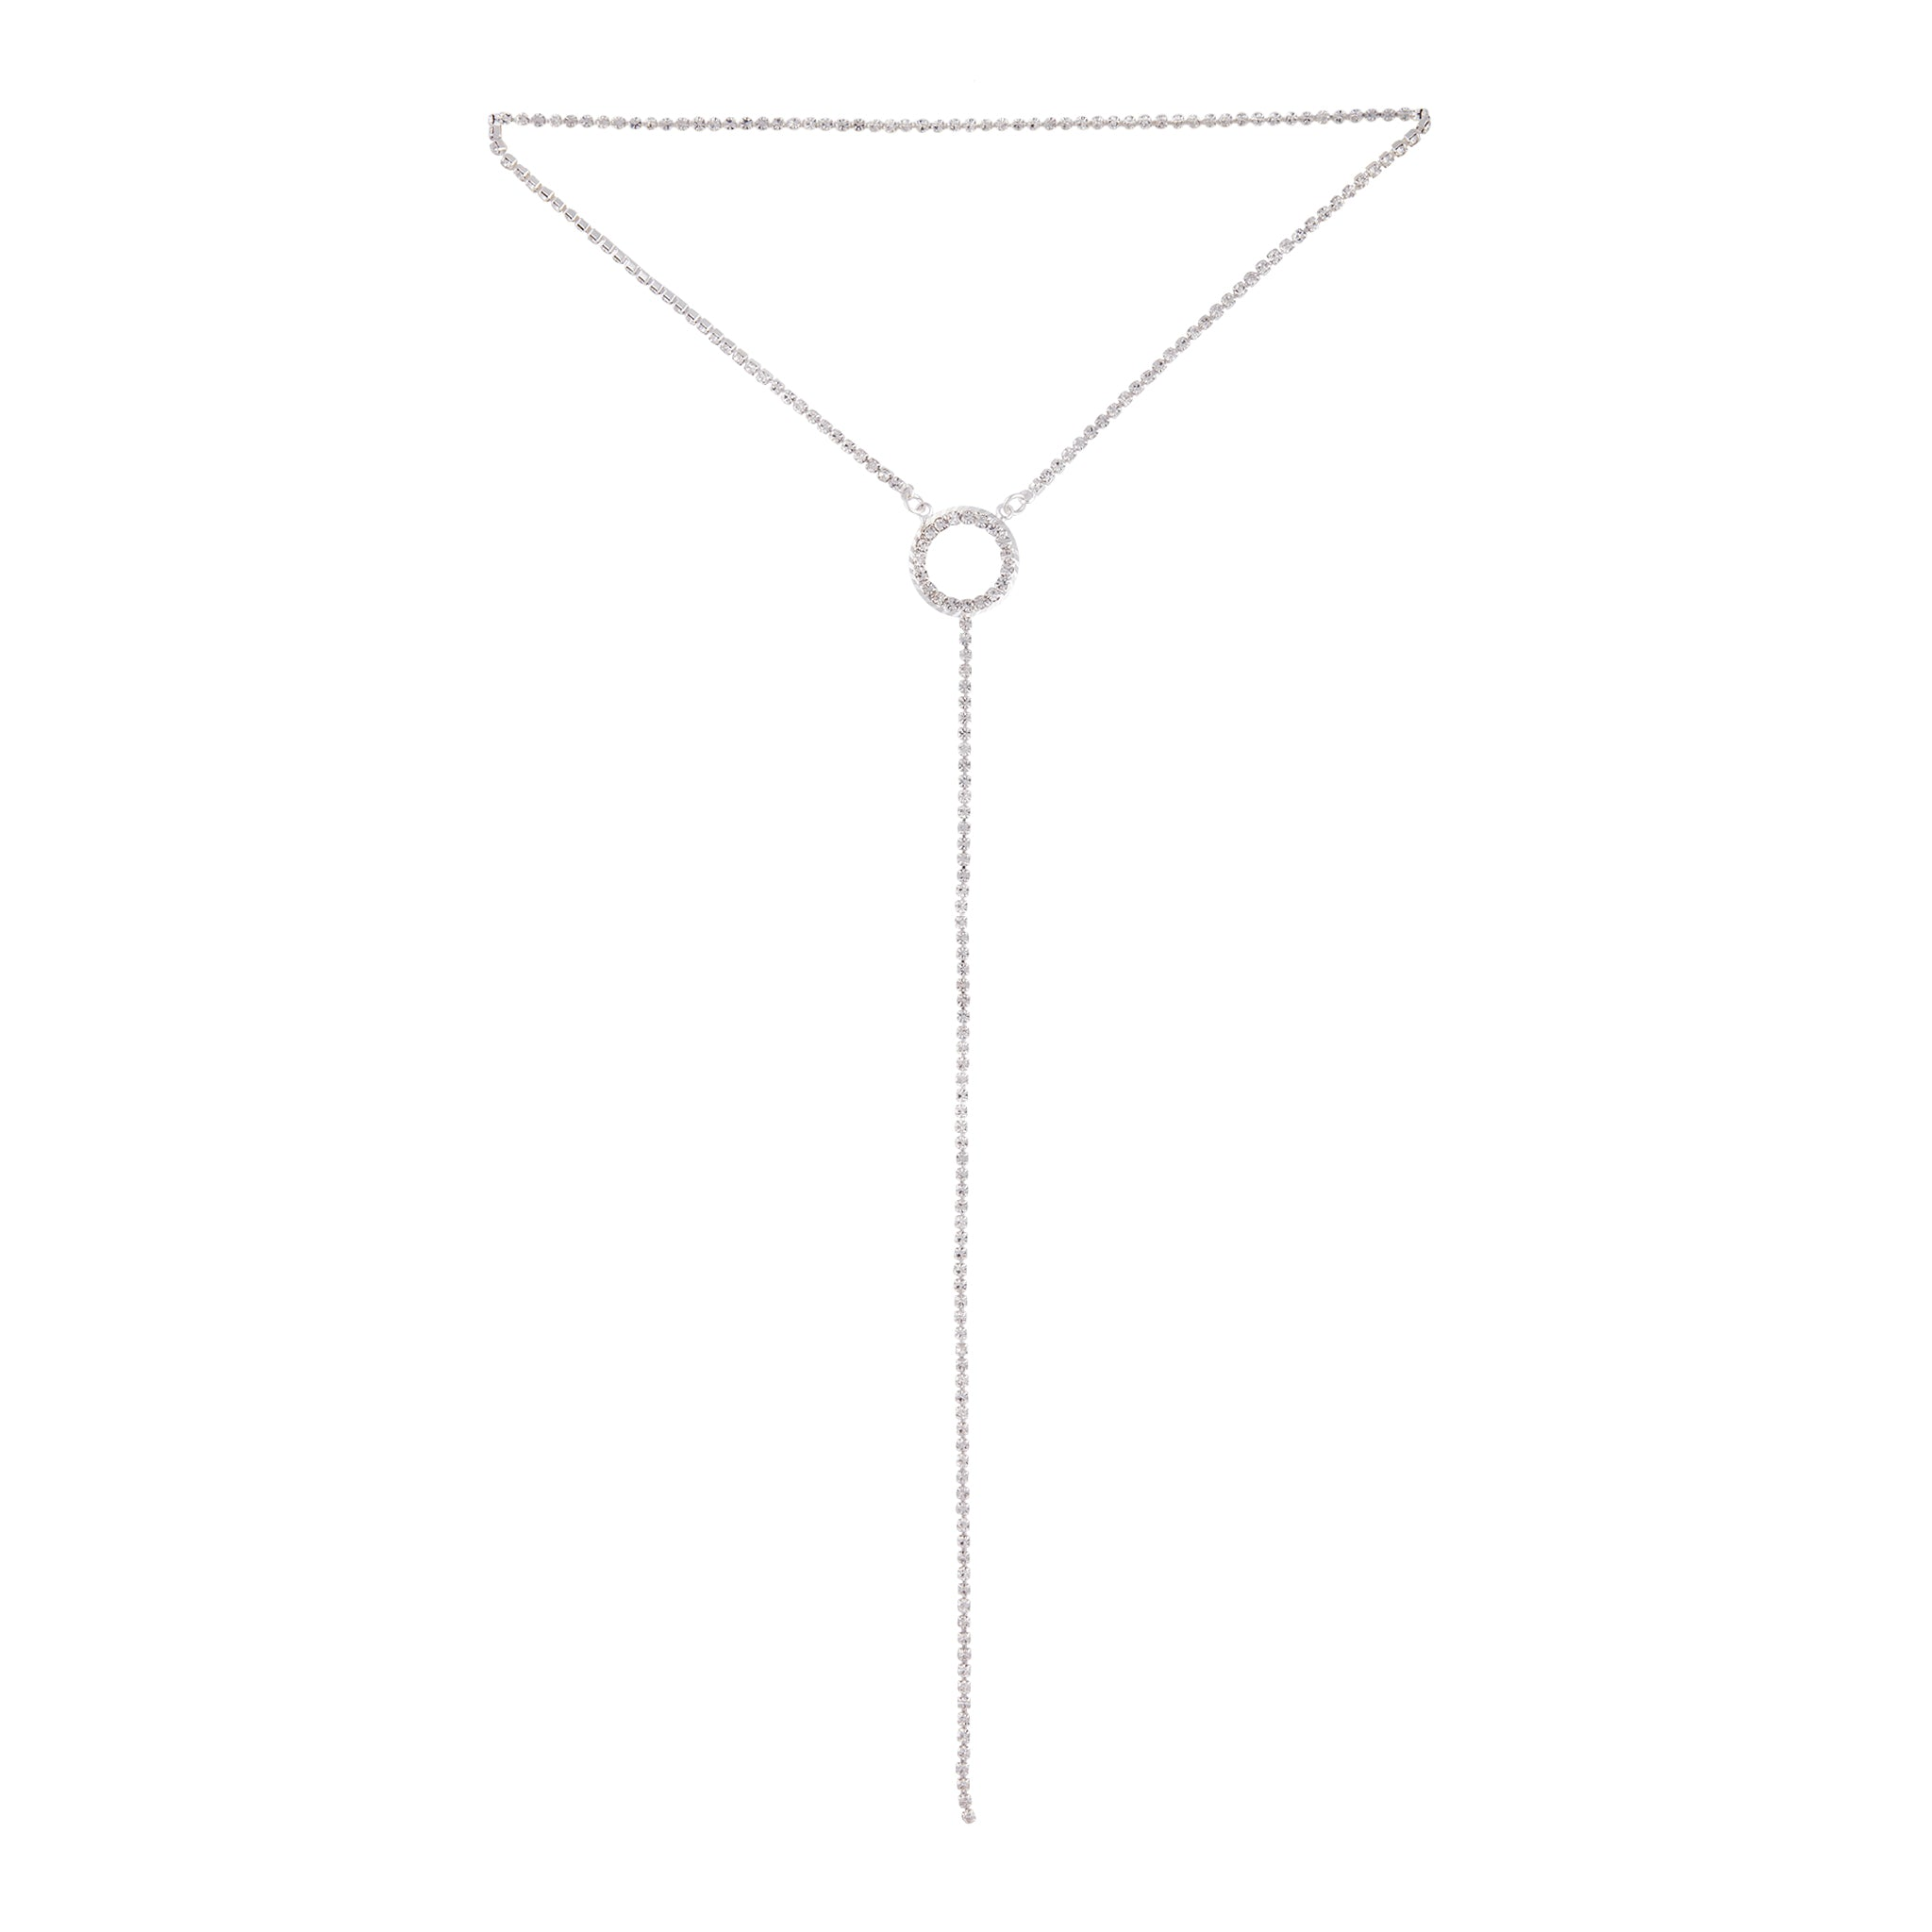 1ee82c11d1f Chokers | Lovisa Jewellery Australia | Layered Necklaces